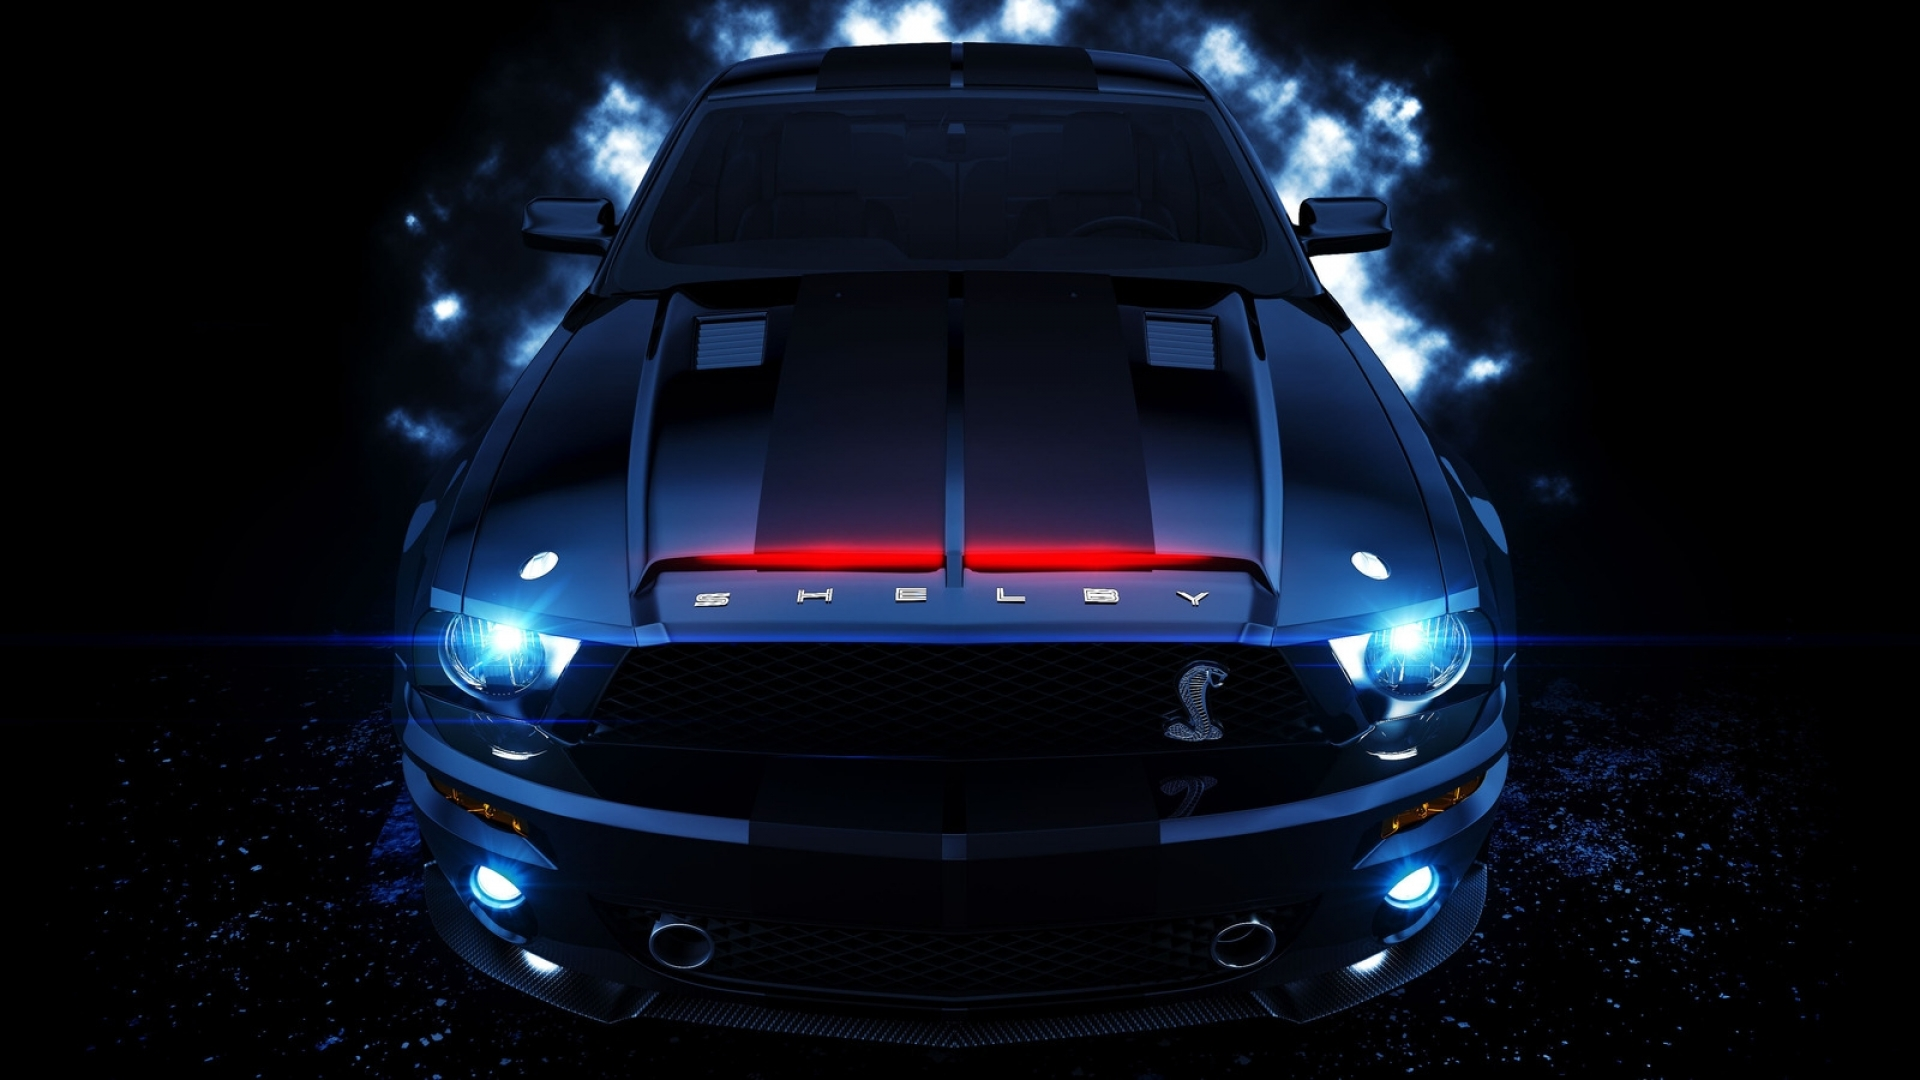 Muscle Car Screensavers And Wallpaper: Free Muscle Car Wallpaper Screensavers